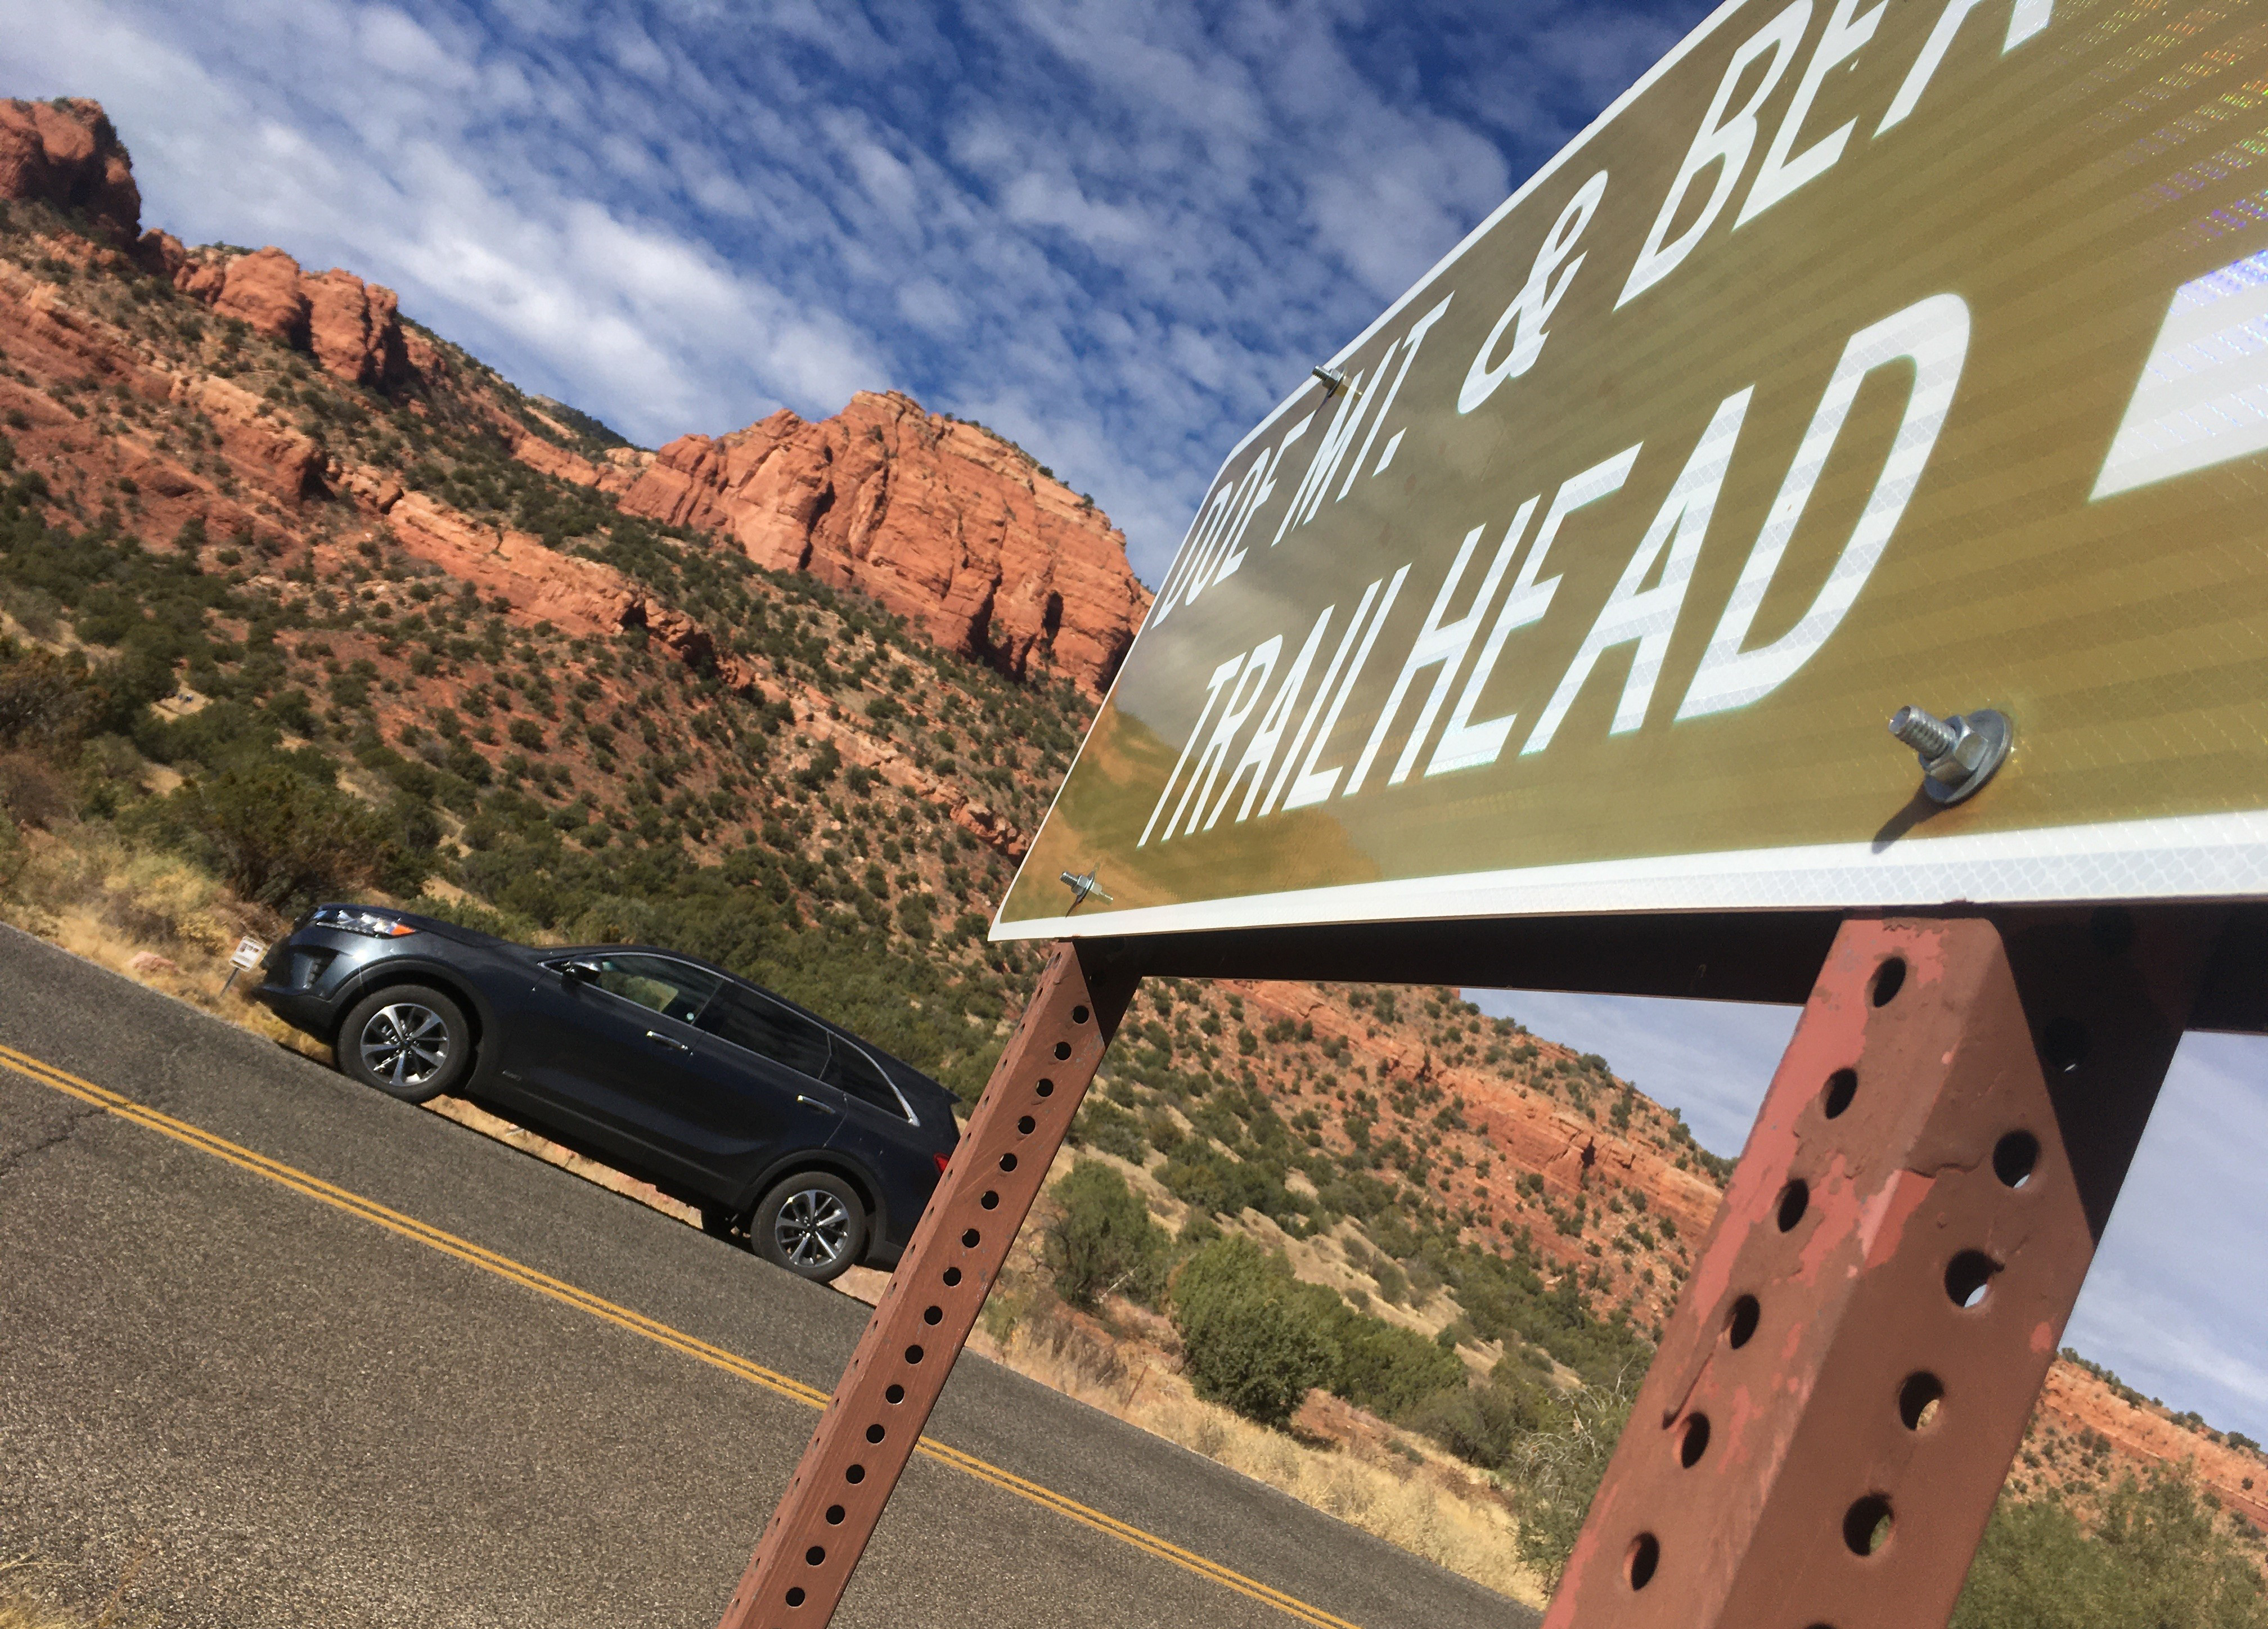 City of Sedona, forest service propose shuttle service to ease parking woes at trailheads